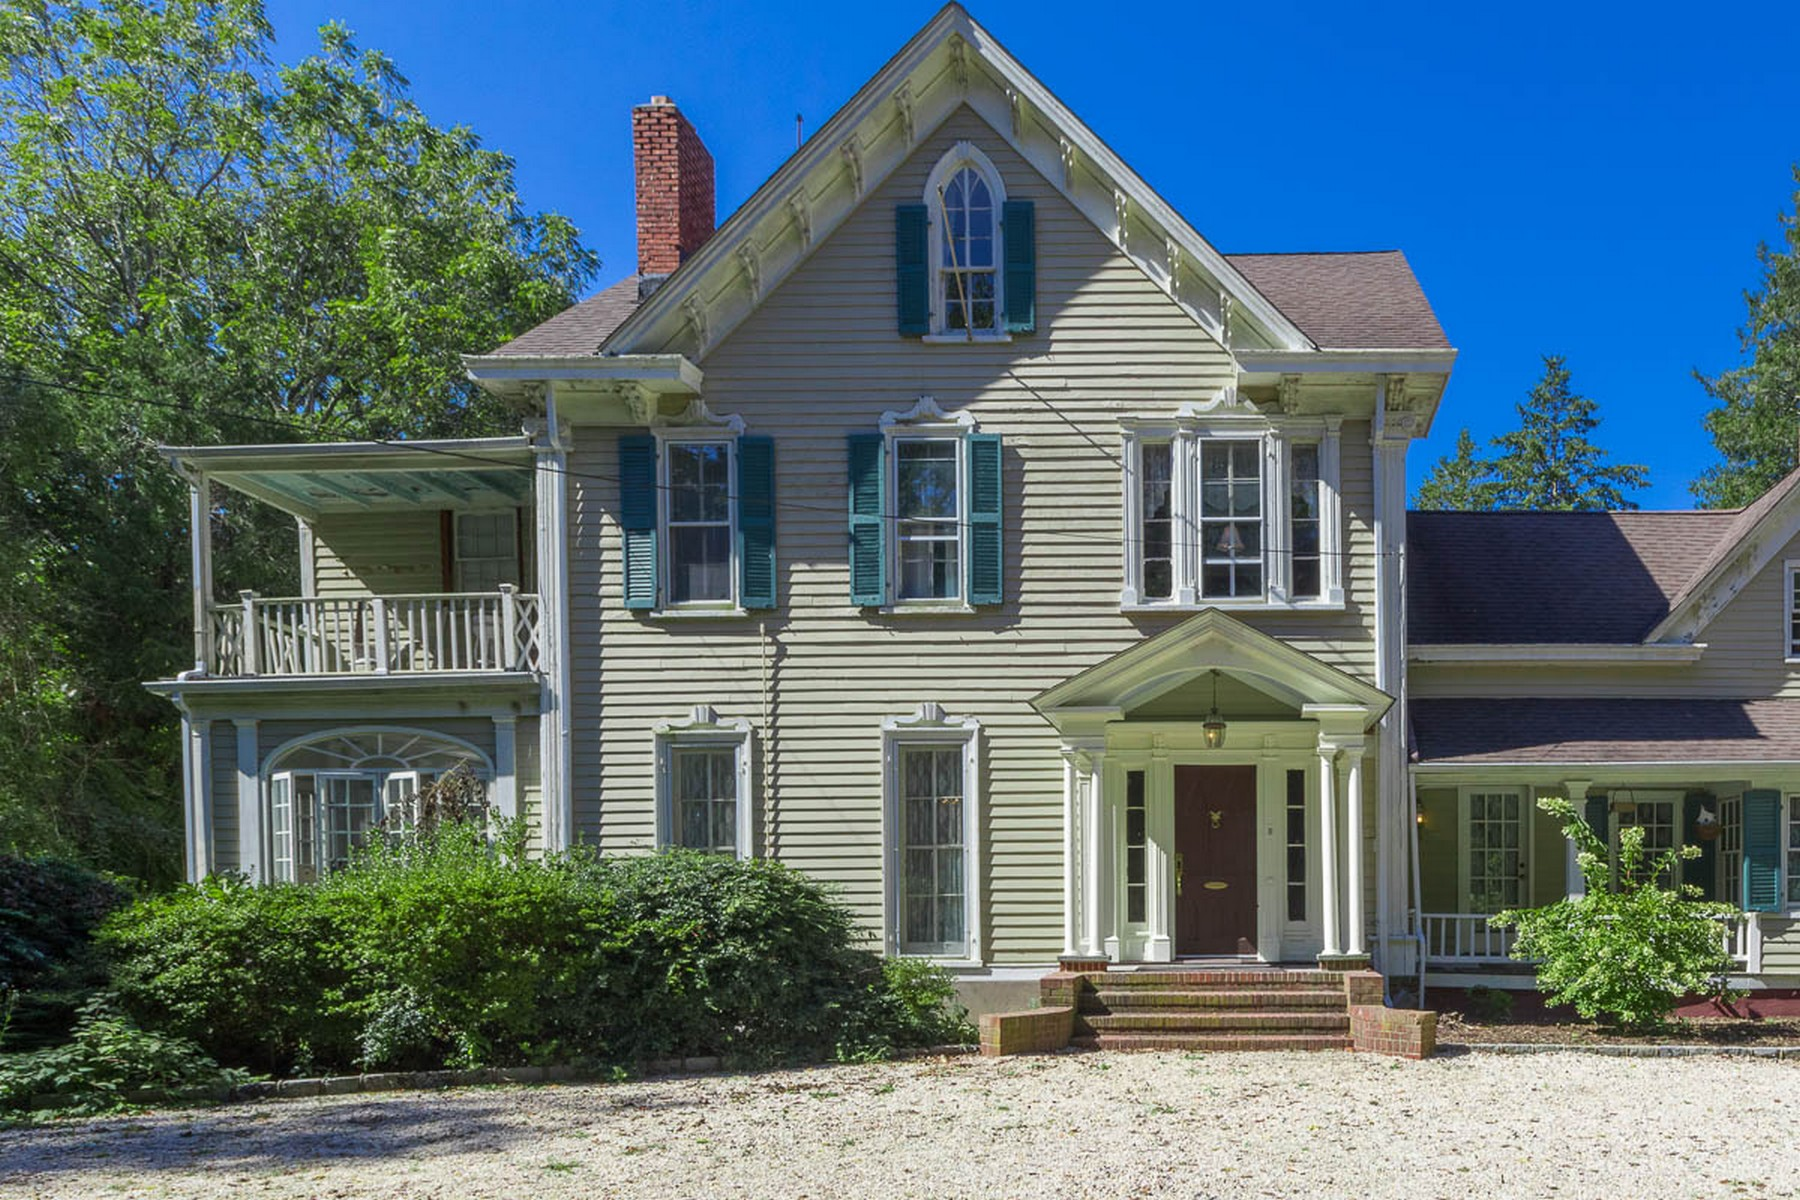 Single Family Homes for Sale at Head Of Harbor 5 Three Sisters Road Head Of The Harbor, New York 11780 United States